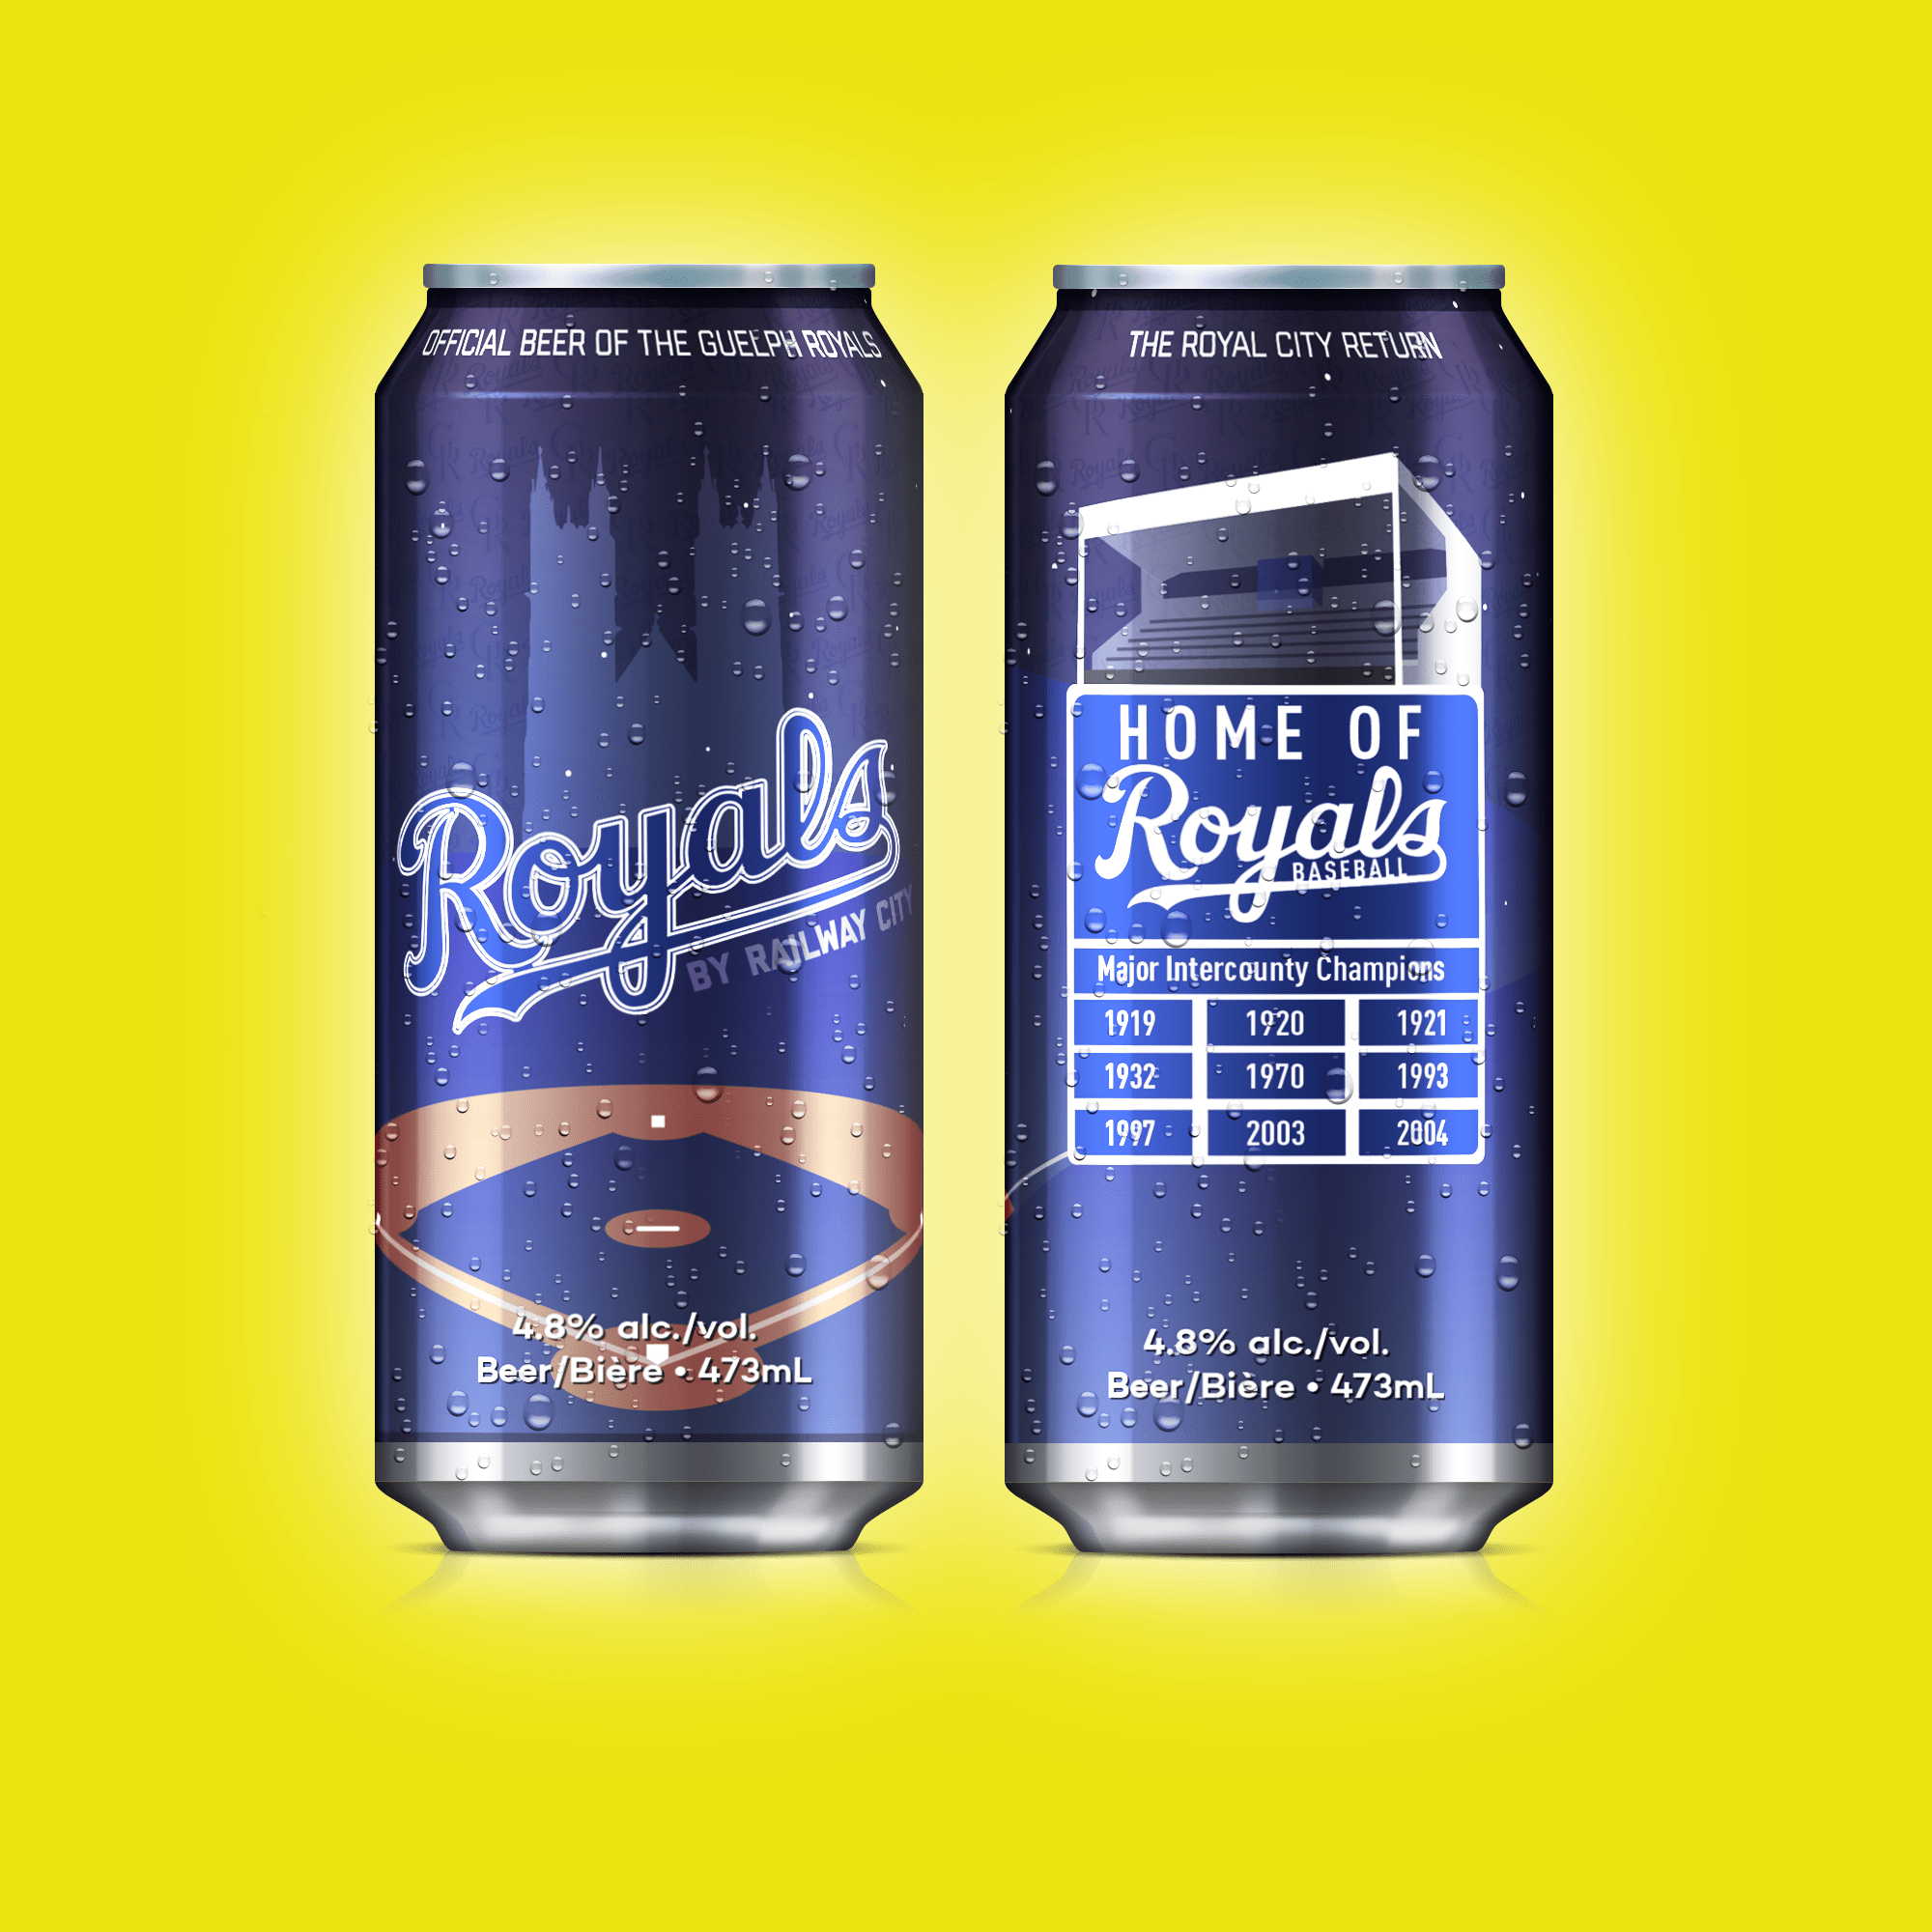 Guelph Royals Beer Can Design